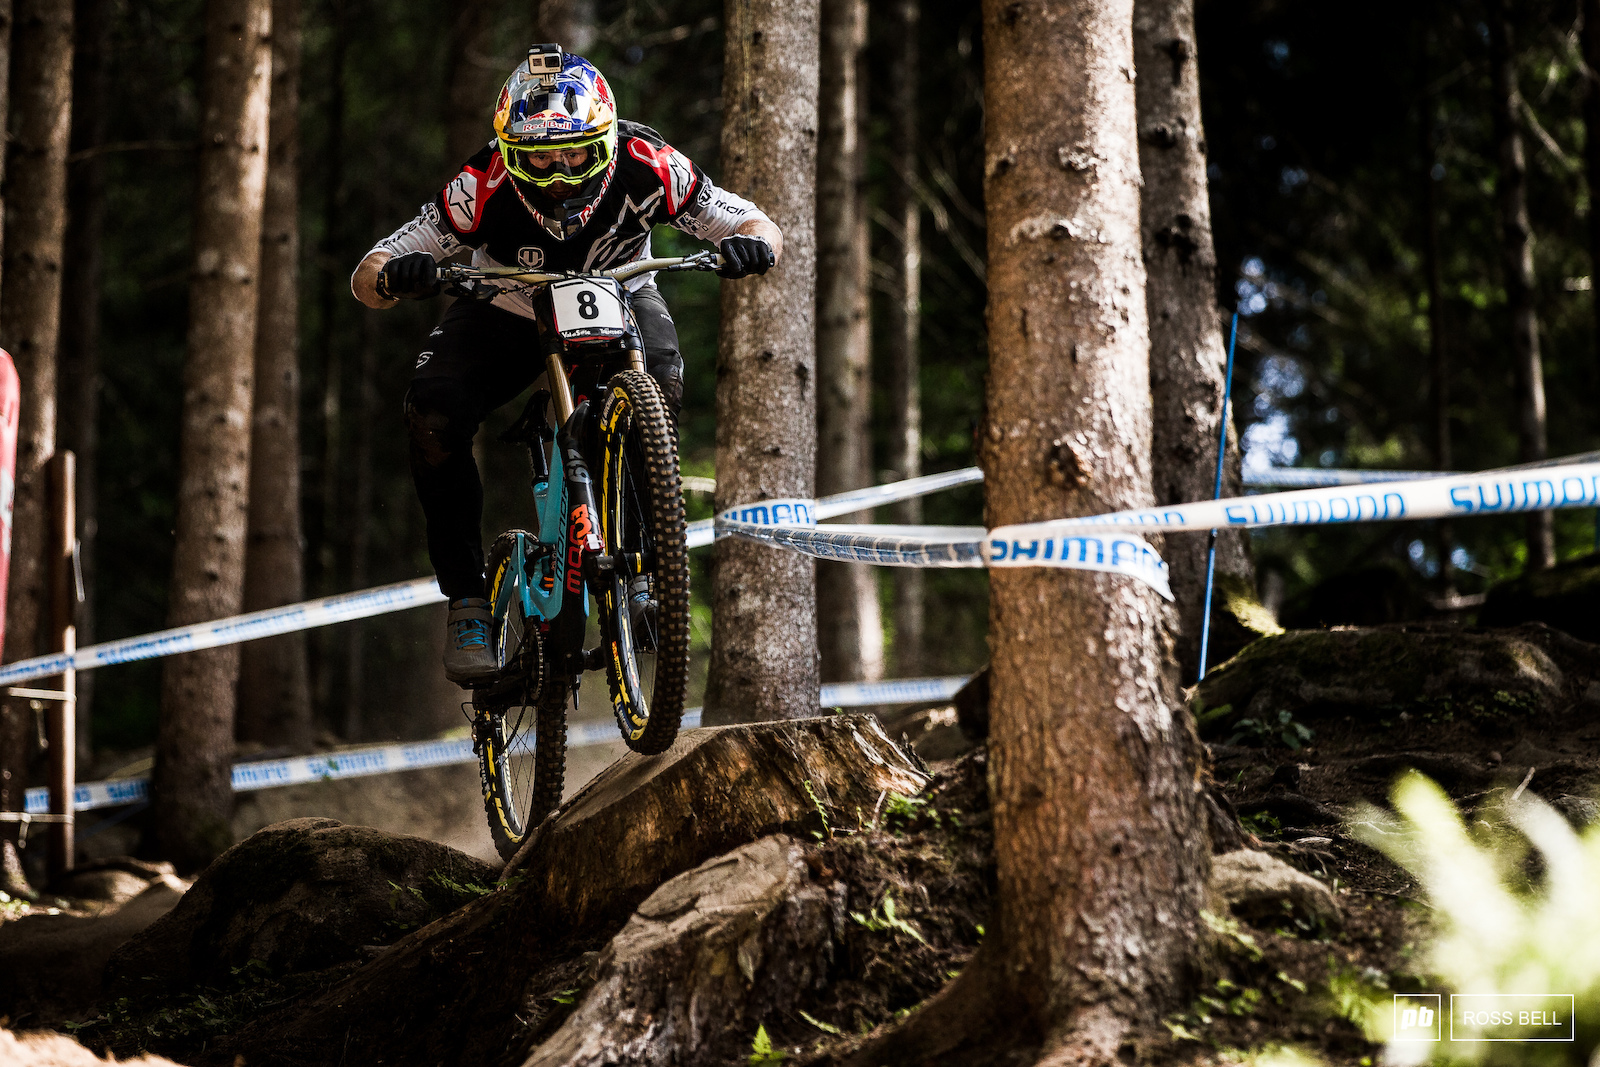 Brook Macdonald and Val di Sole are a match made in heaven. The track here brings out the best in Brook s riding style.